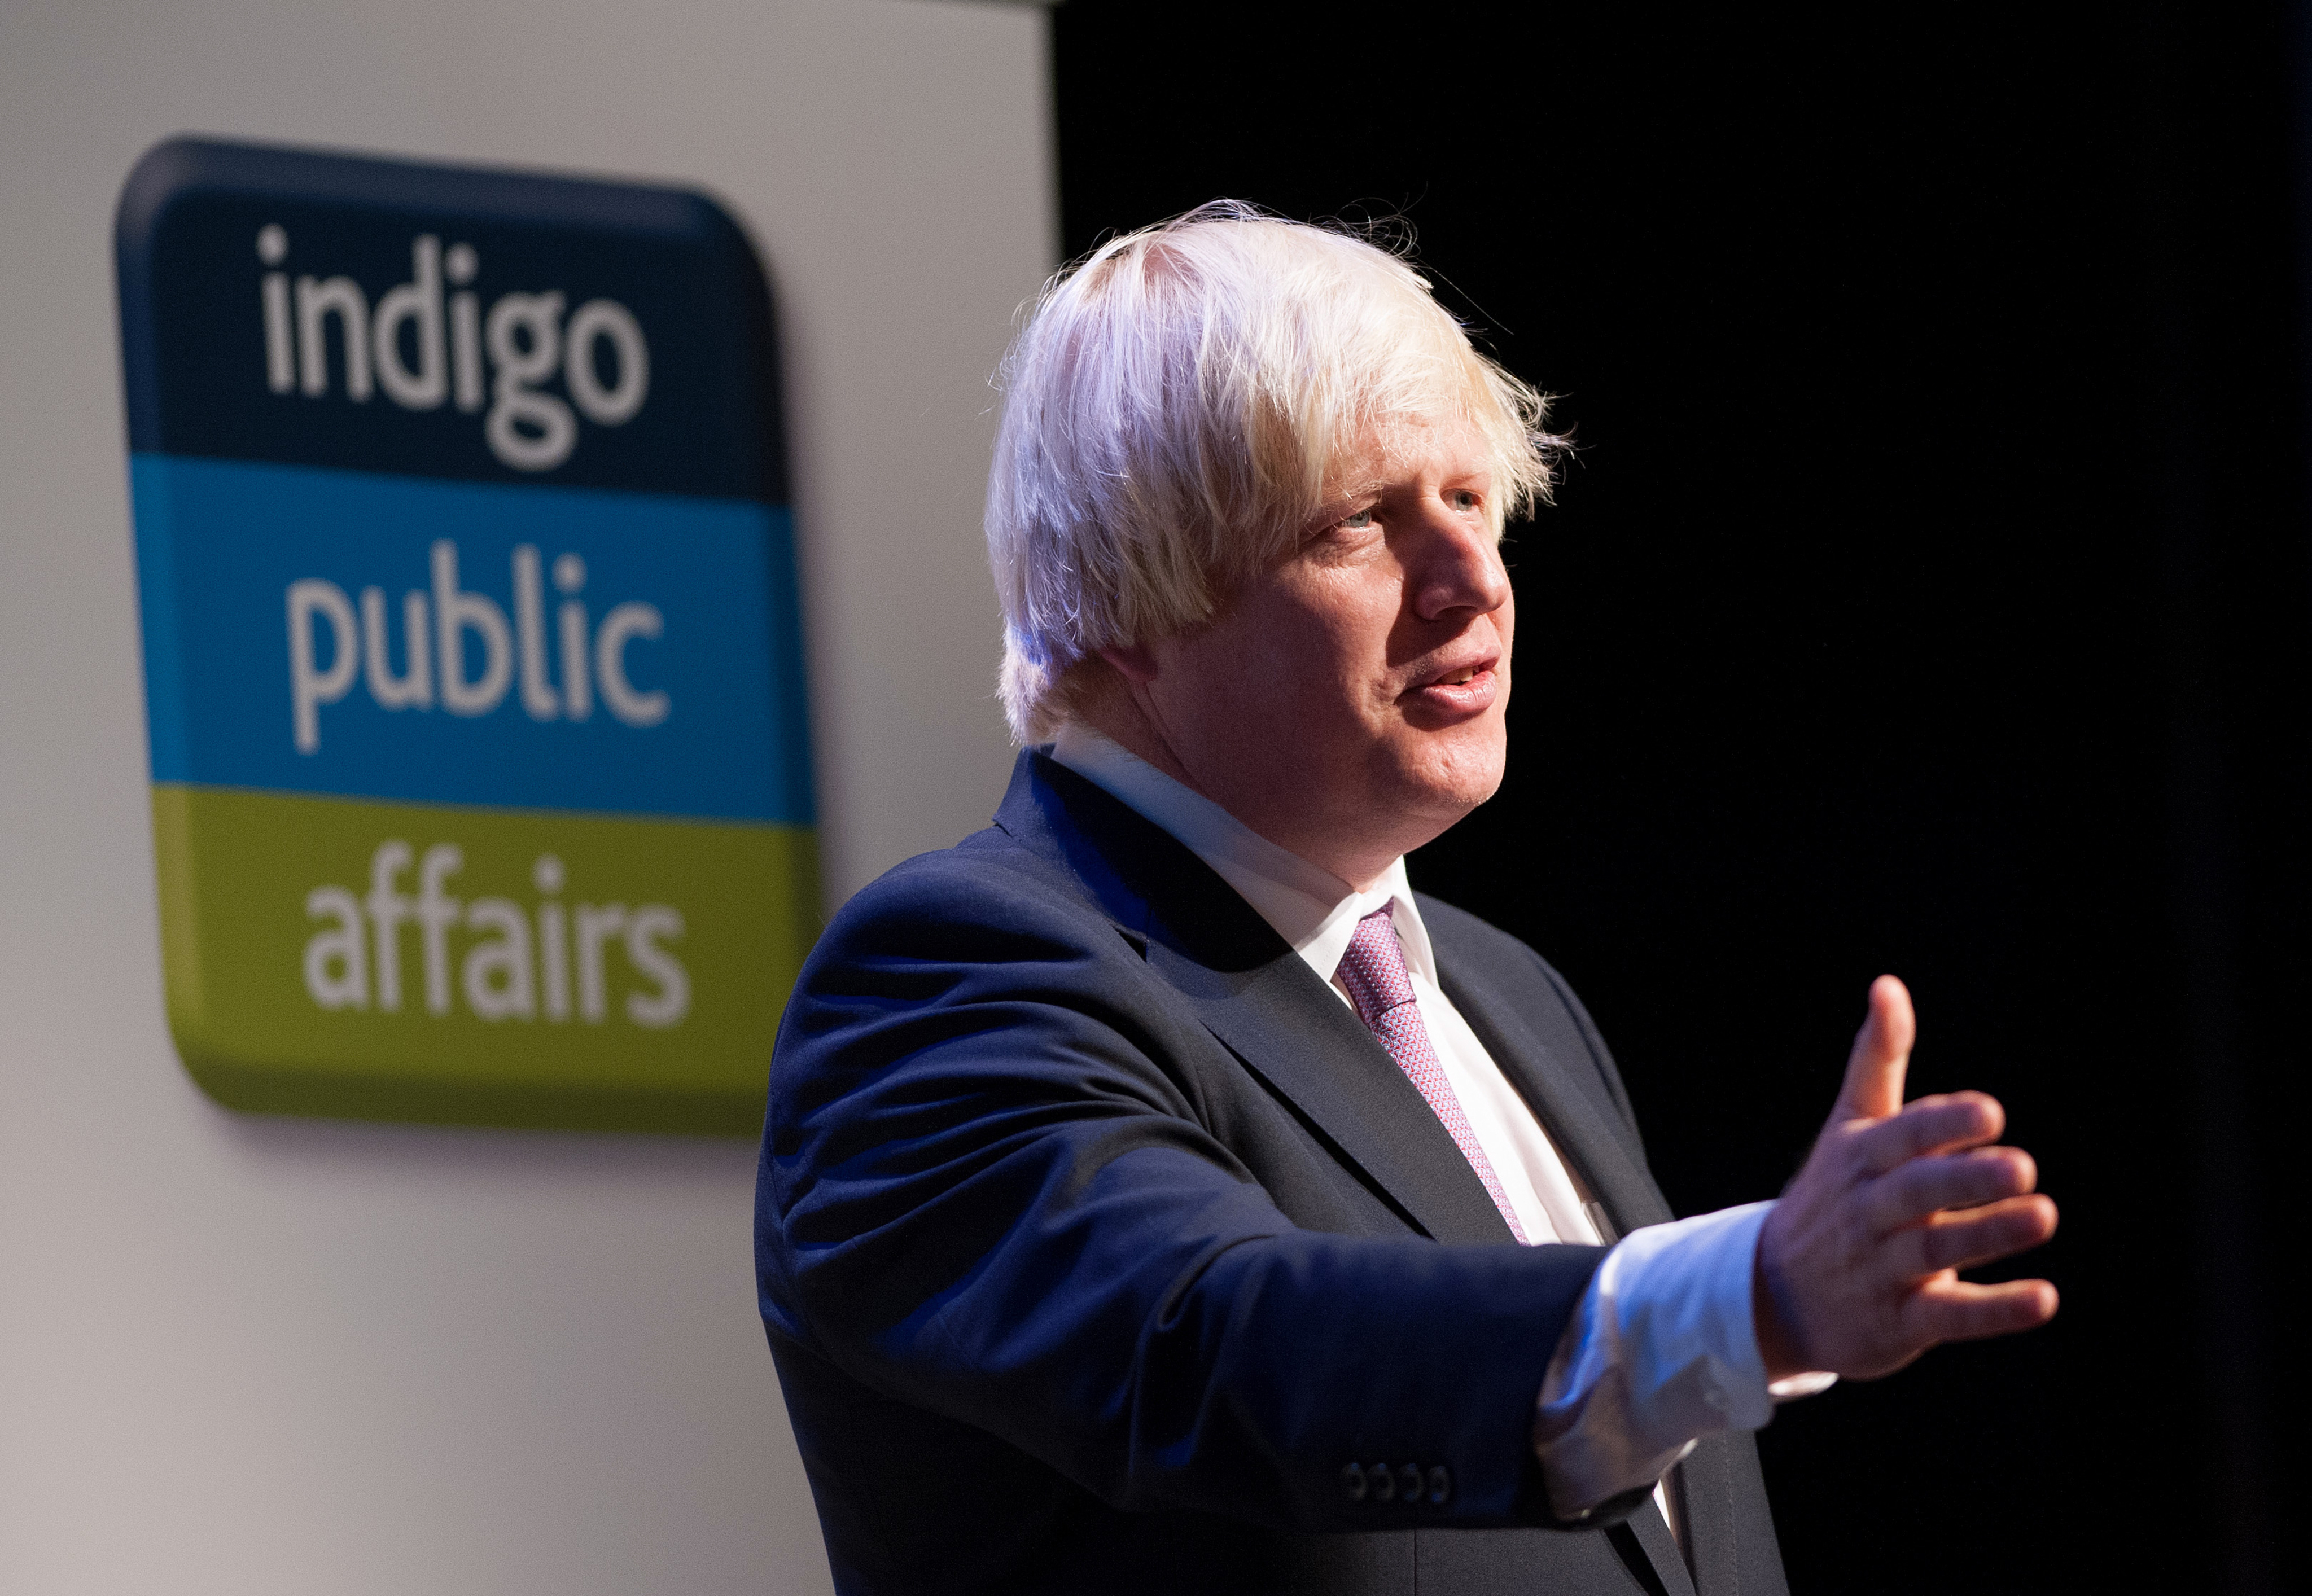 The Mayor of London Boris Johnson speaks to delegates during the Conservative Conference 2013, held at Manchester Central.